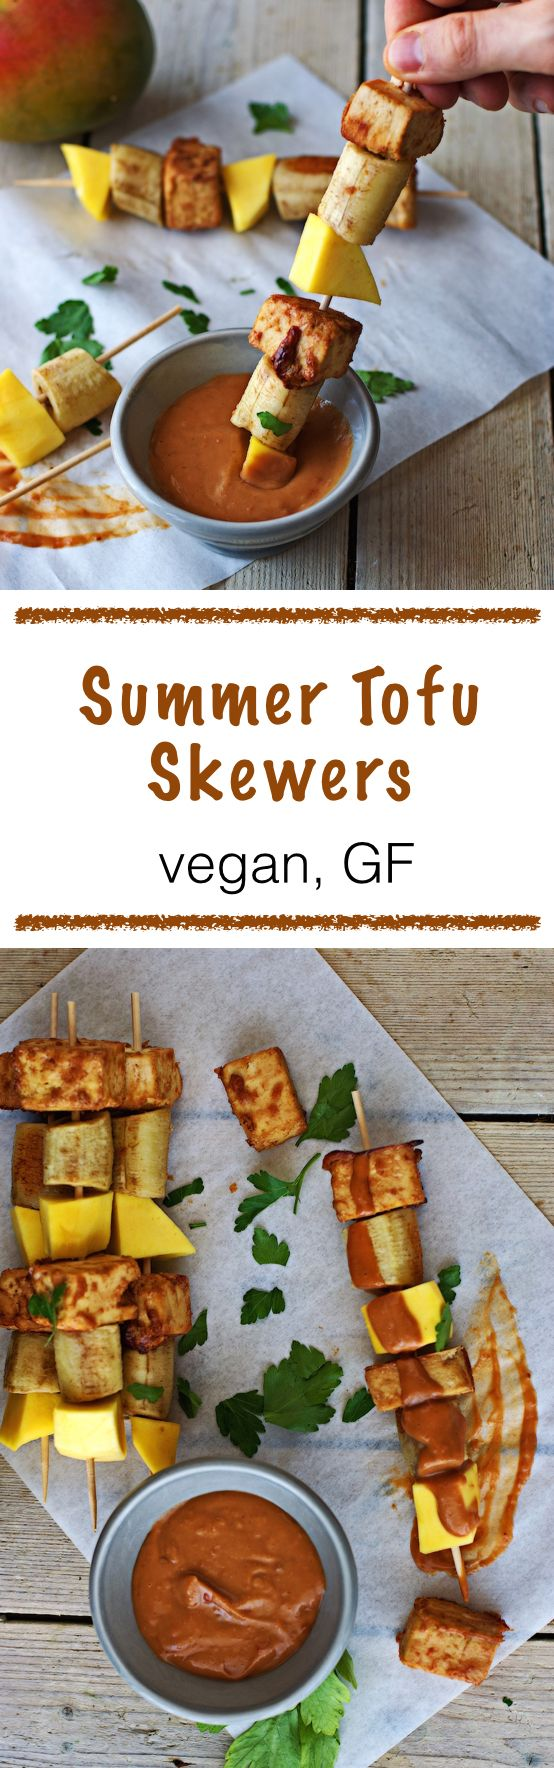 A homemade peanut sauce is both a marinate and a dip for these #vegan skewers. Marinated #tofu cubes, plantains, and mango - that's all it takes to make these either in the oven or on the #grill. Full hearty-fruity taste, light, and simple - an ideal dish for warm #summers.